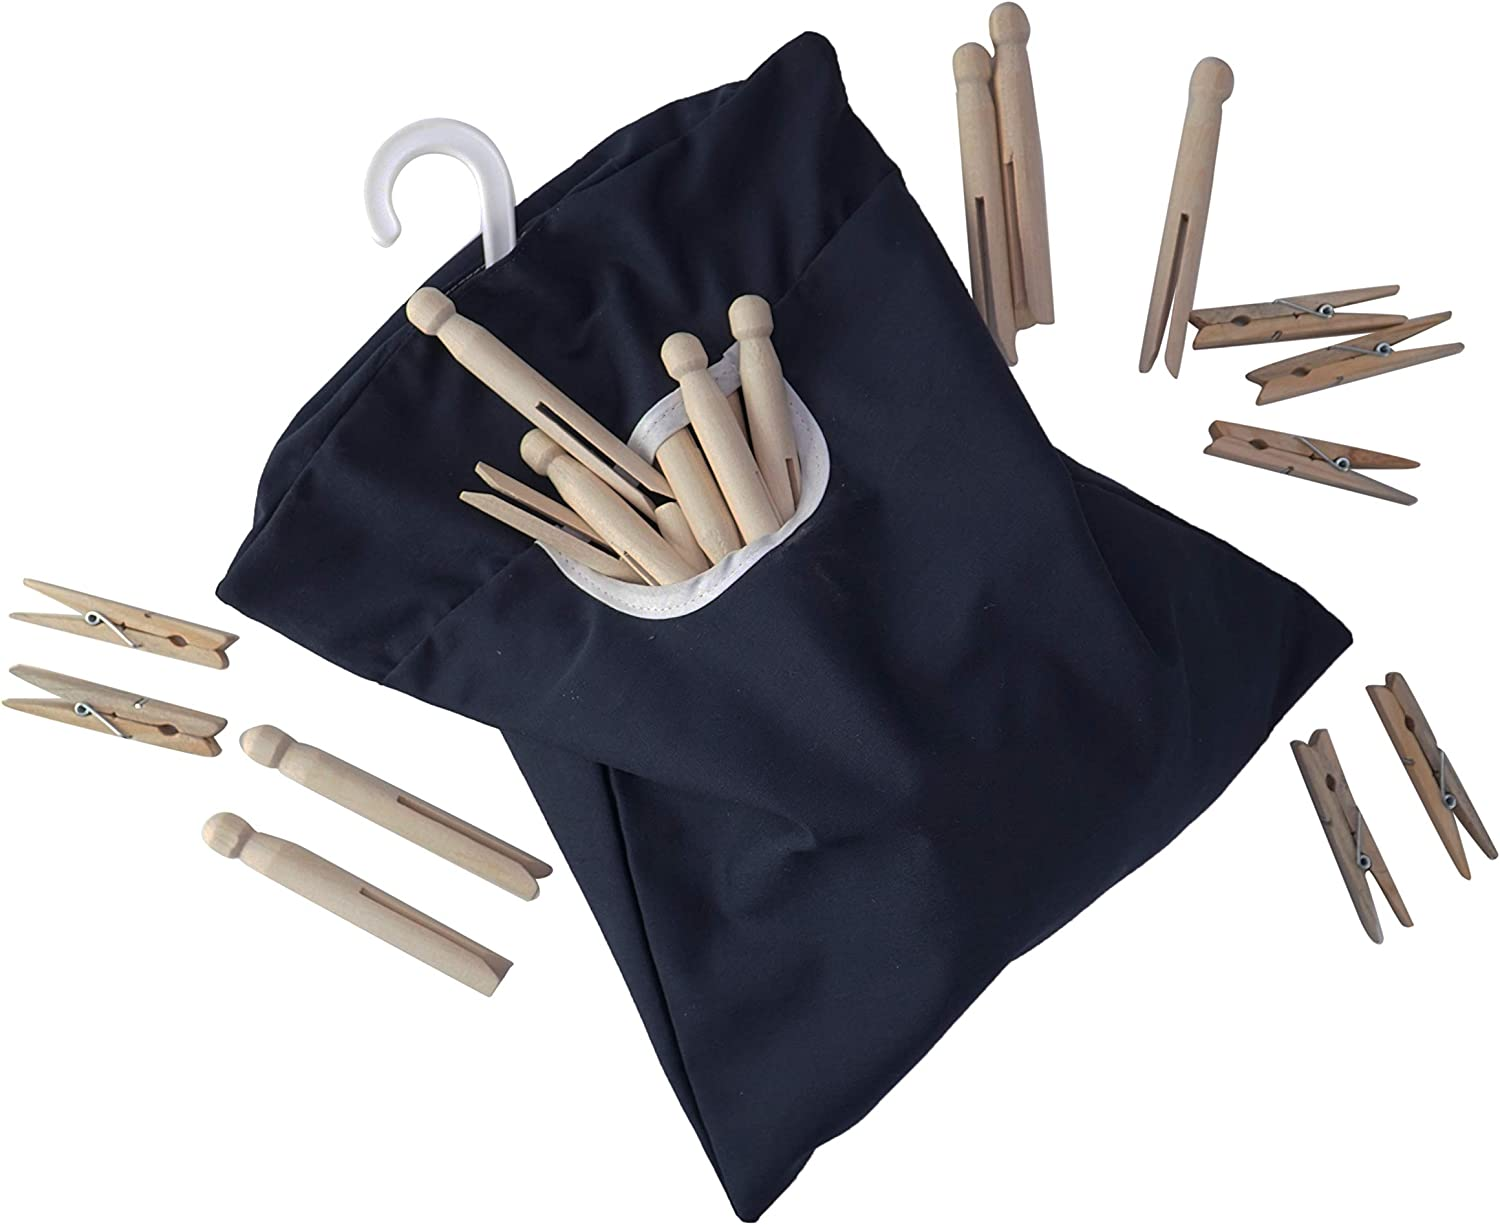 HOME-X Canvas Clothespin Storage Bag - Holds 100 Medium-Sized Clothes Pins-Hook for Hanging and Effortlessly Sliding on The Clothesline with an Easy to Use Opening-11 x14-Black